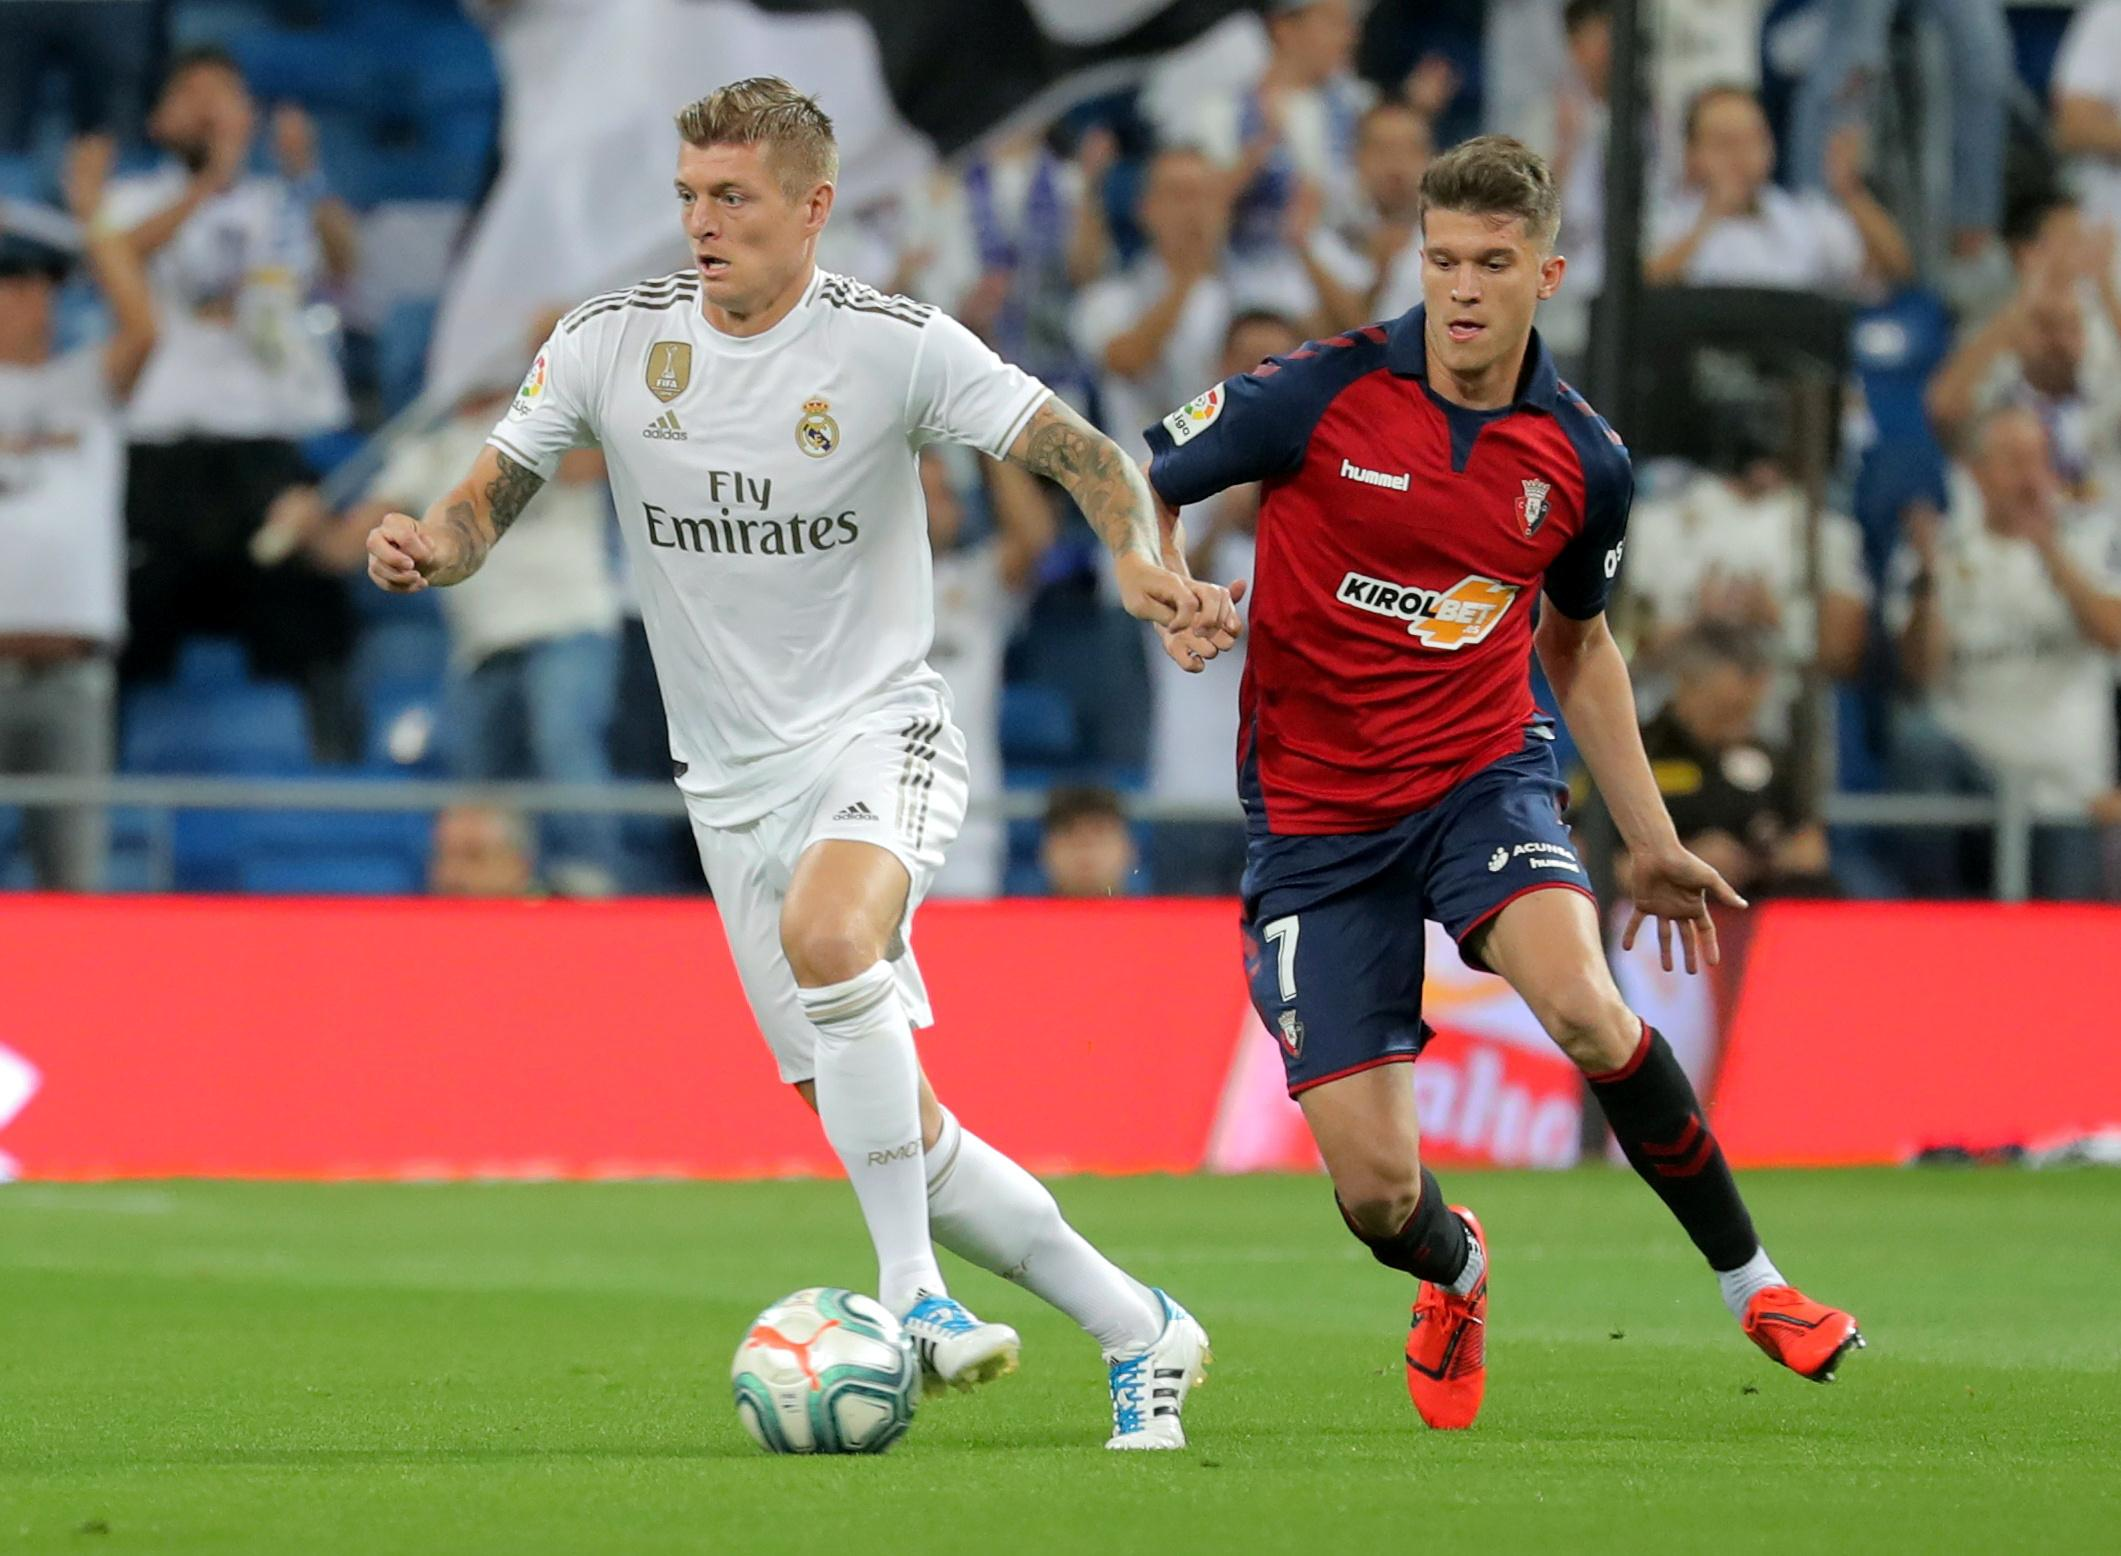 Injured Kroos out of Germany matches, in danger of missing Clasico